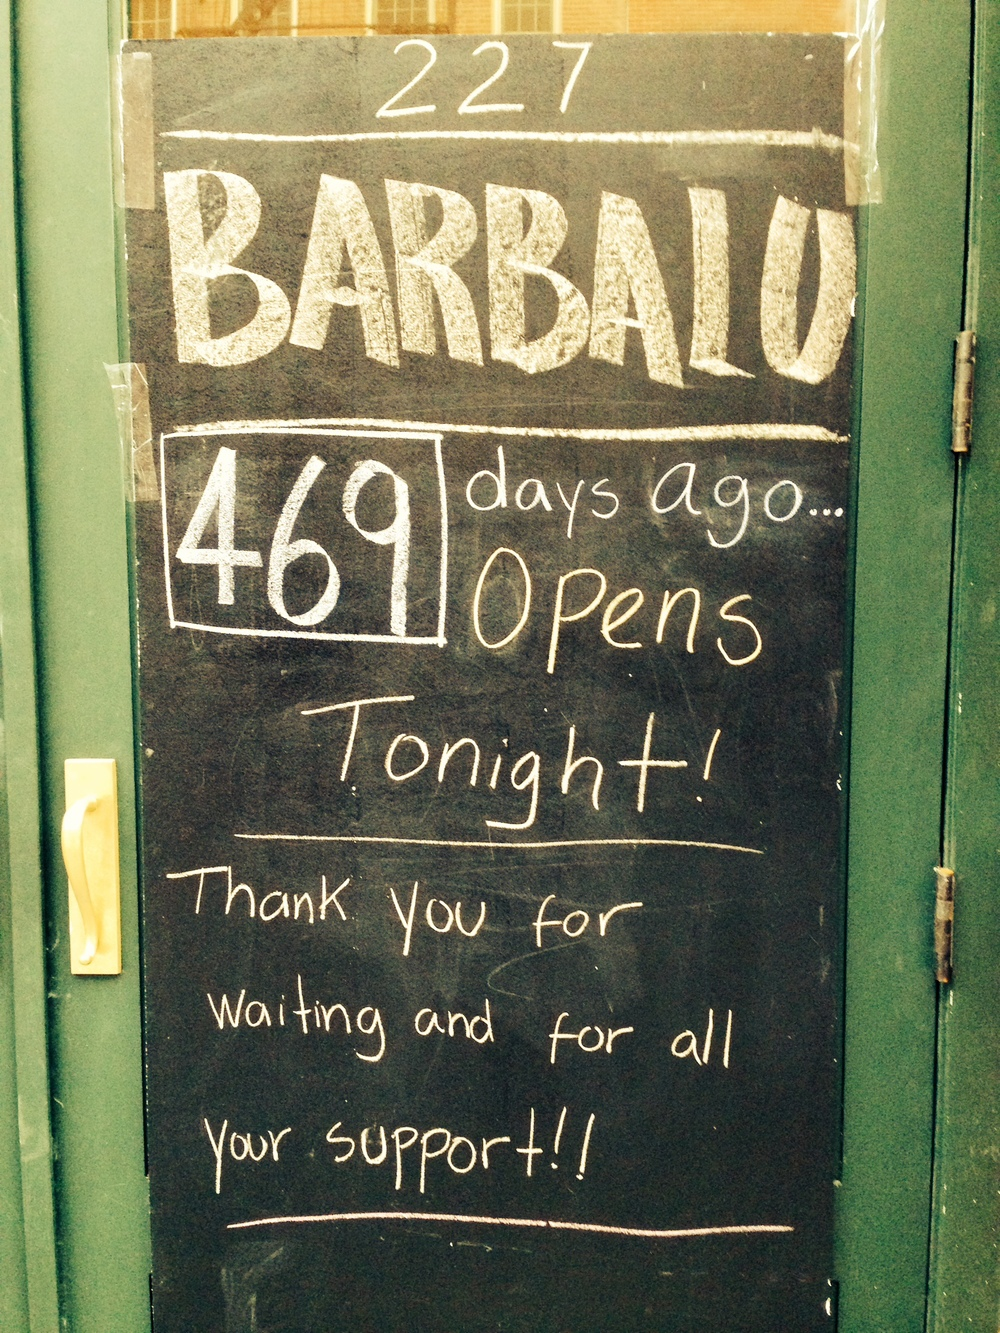 Barbalu Opens Tonight.jpg